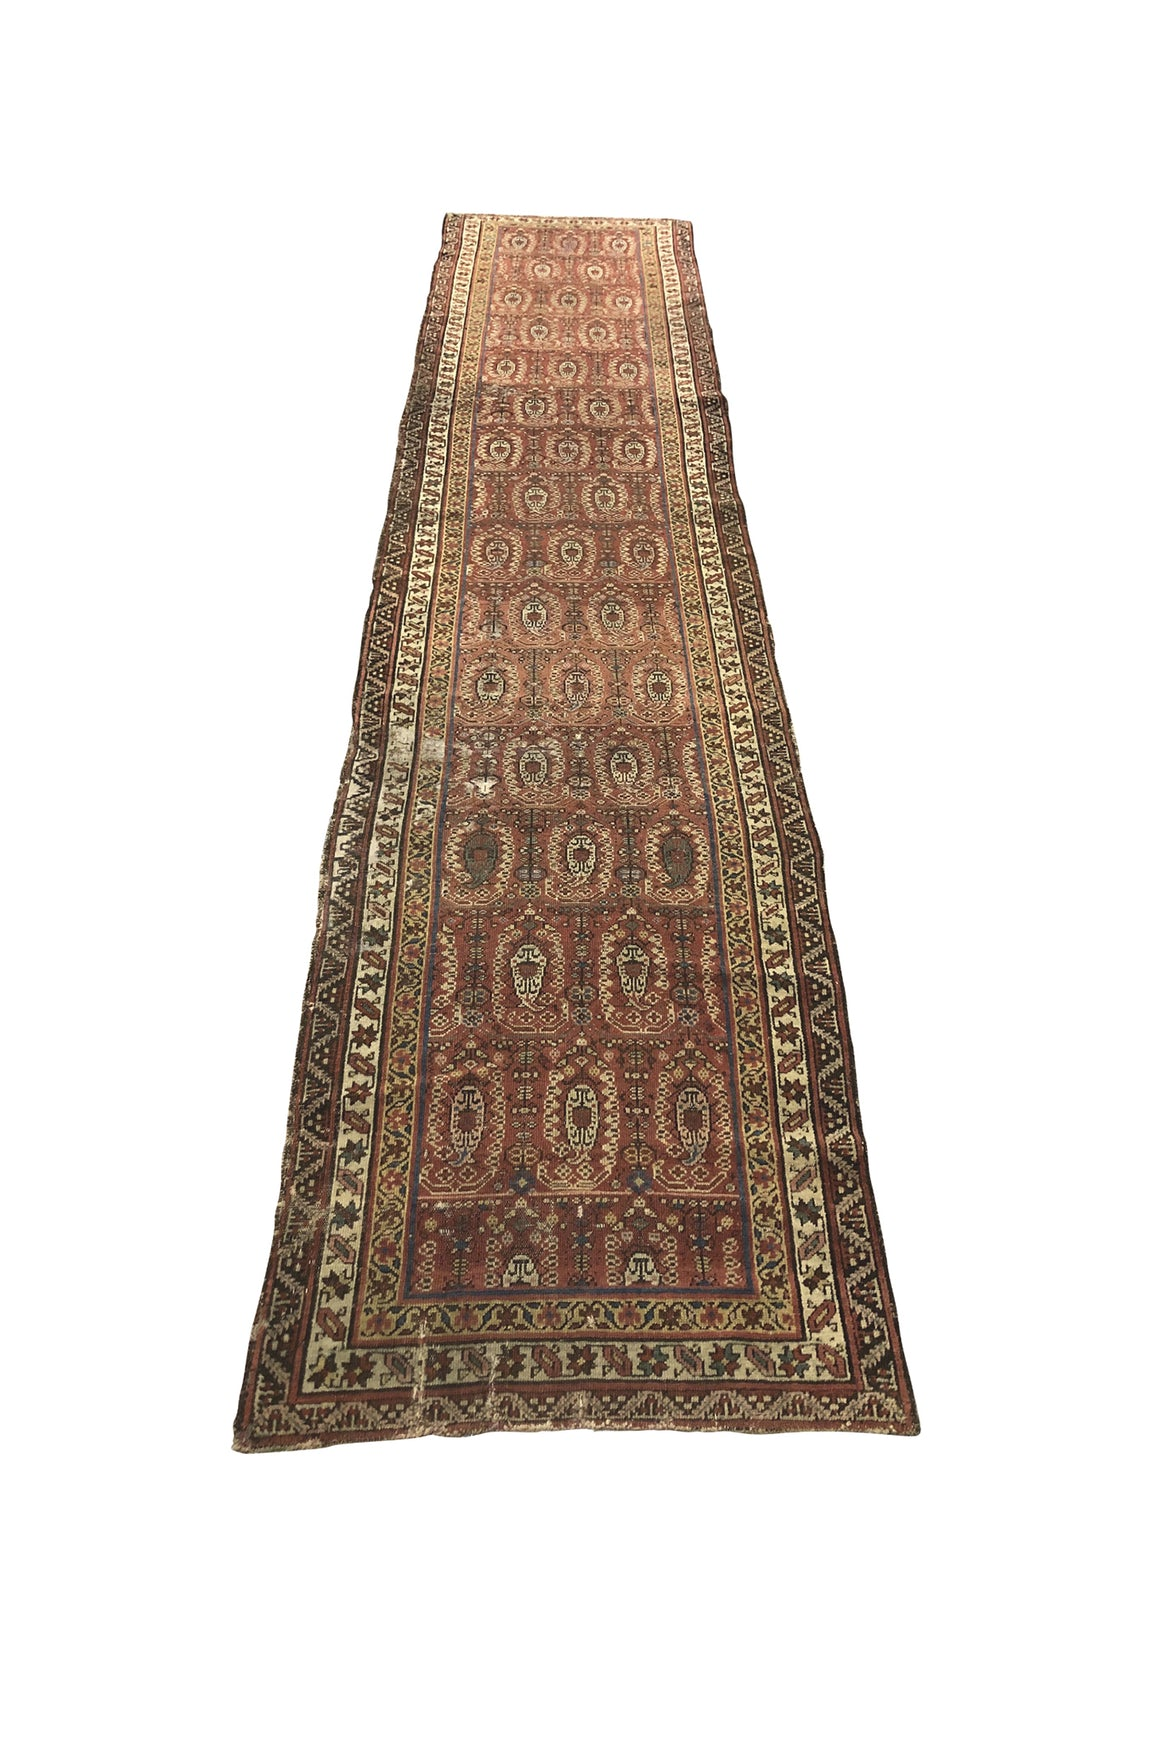 "Antique Serab Runner Rug - 154"" x 33"""